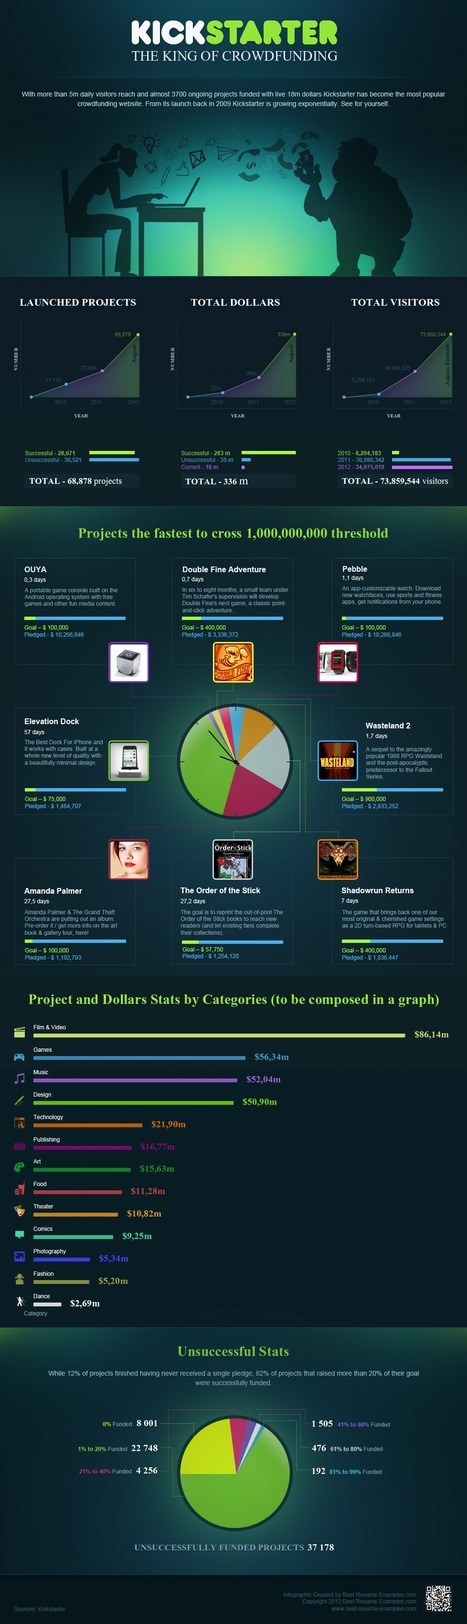 7 Infographics:  Kickstarter Facts, Figures & Statistics | DV8 Digital Marketing Tips and Insight | Scoop.it